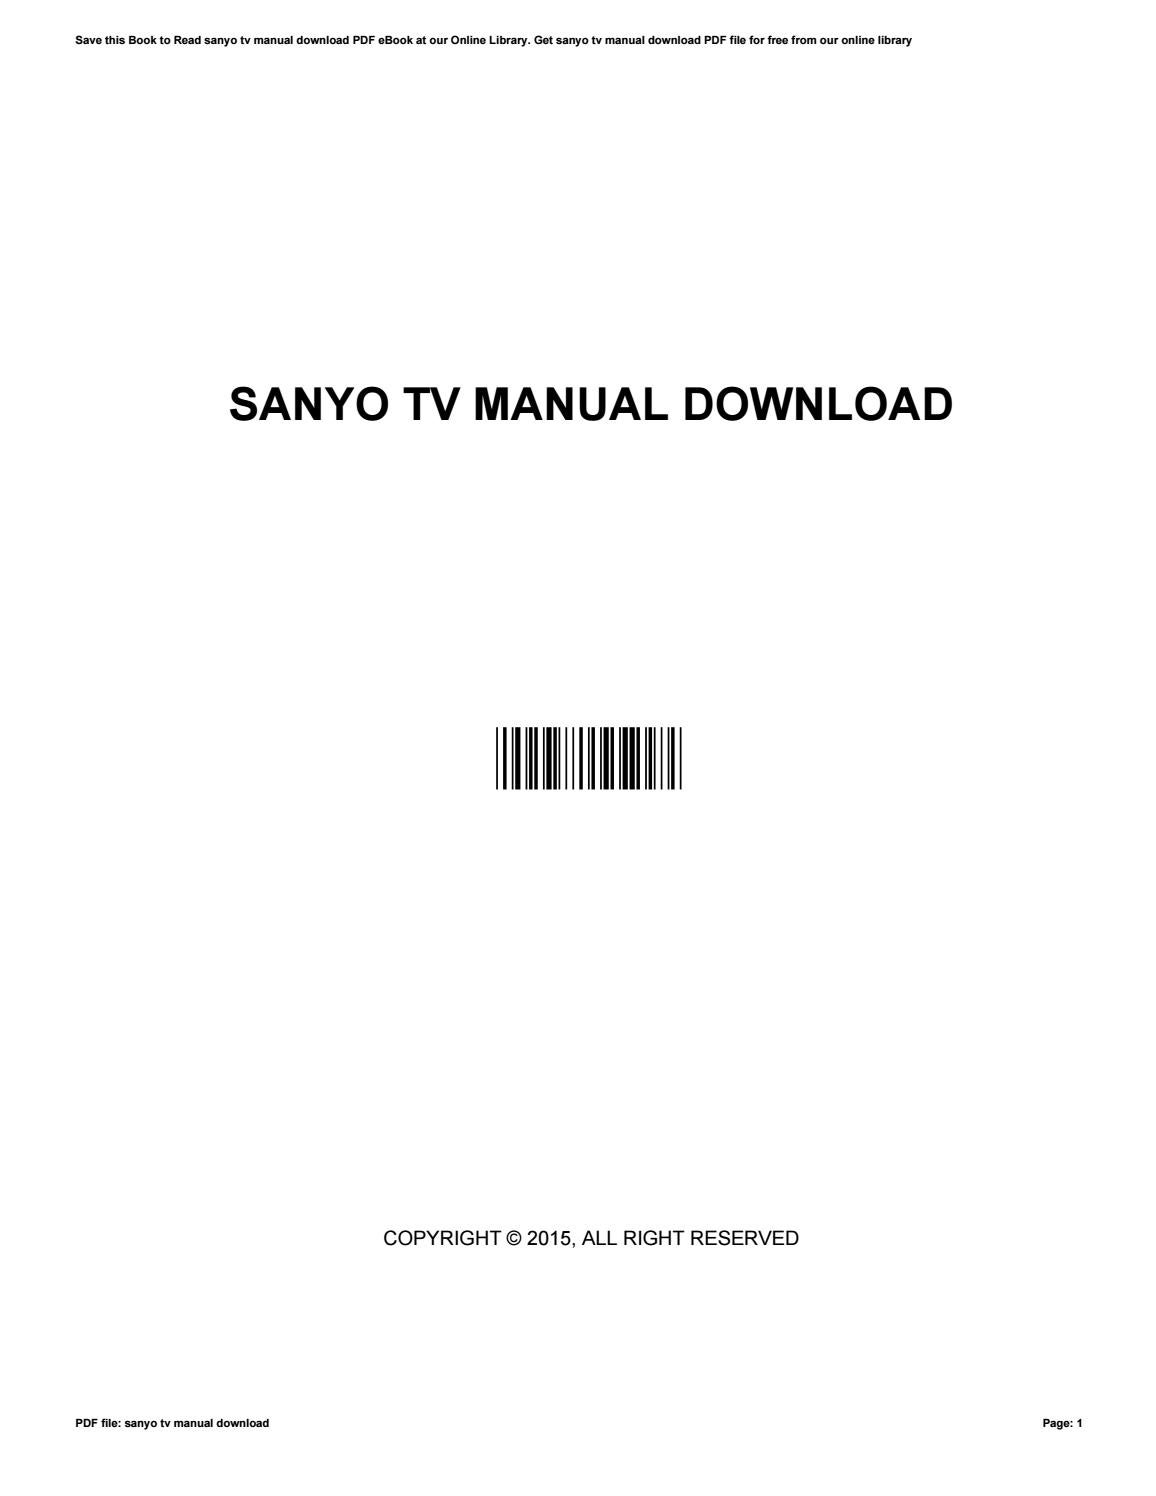 Sanyo tv manual download by mnode8 - issuu